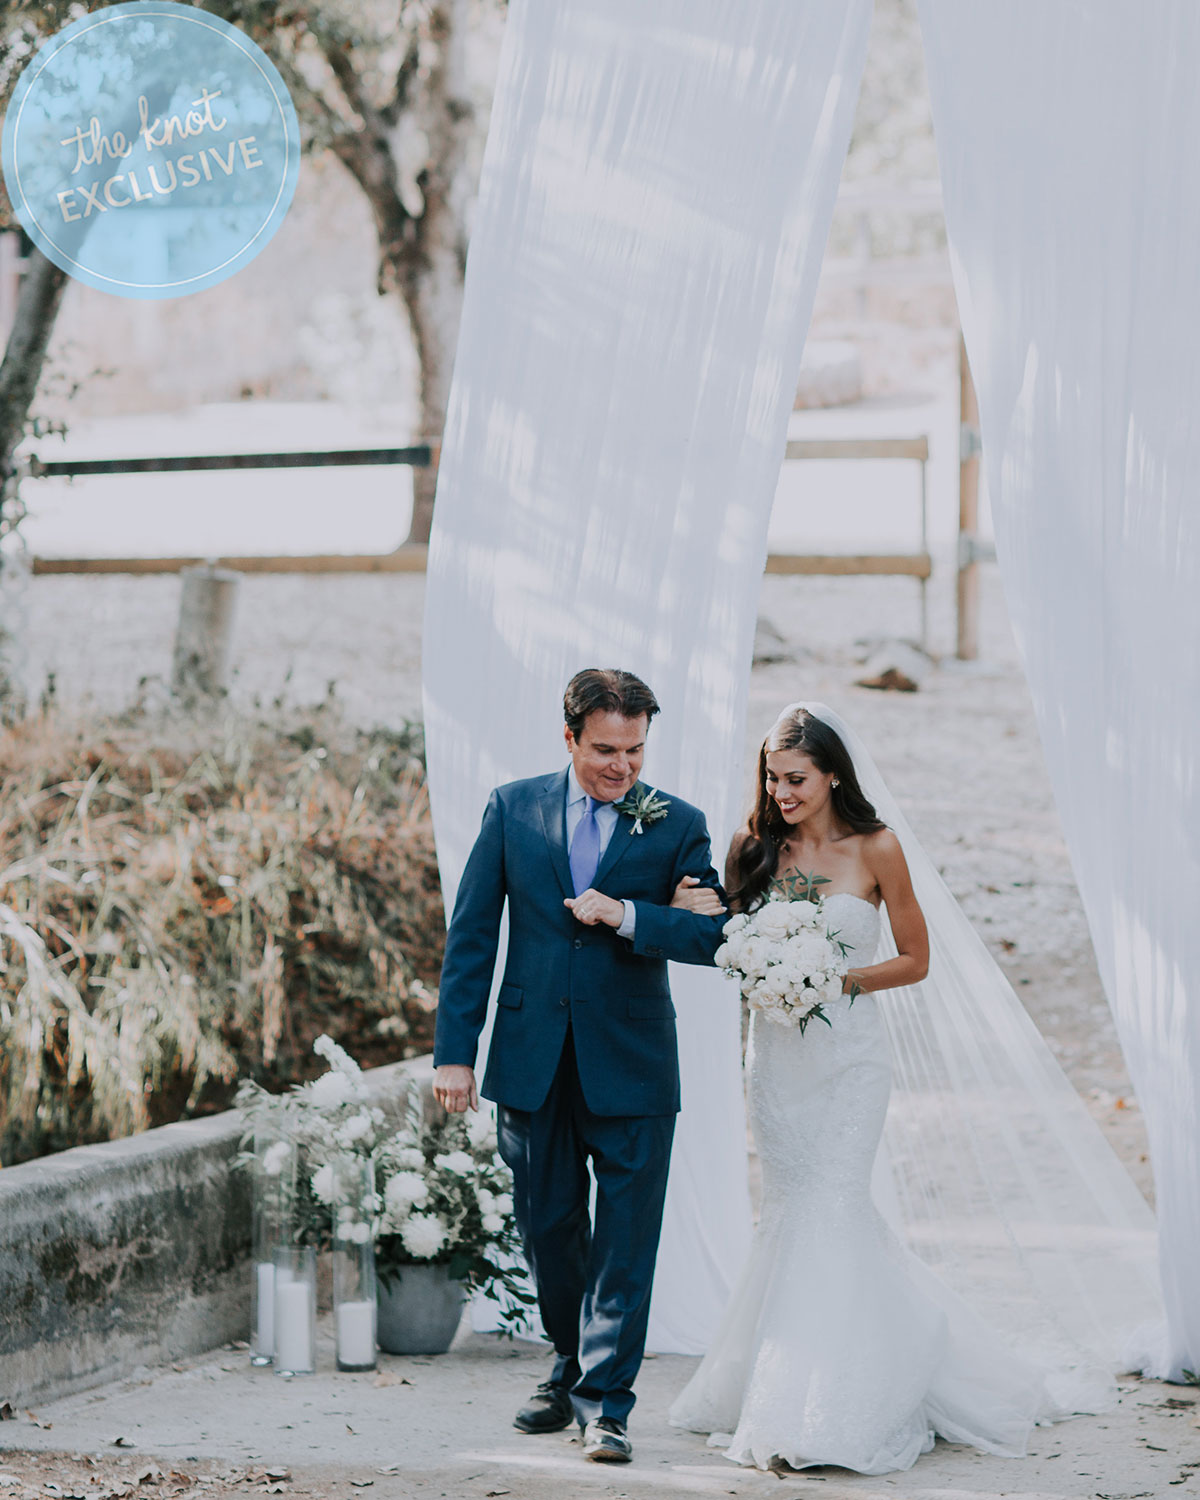 Britt Nilsson and Jeremy Byrne's wedding, California, September 2017. (Amy Vafa / Vafa Photography)